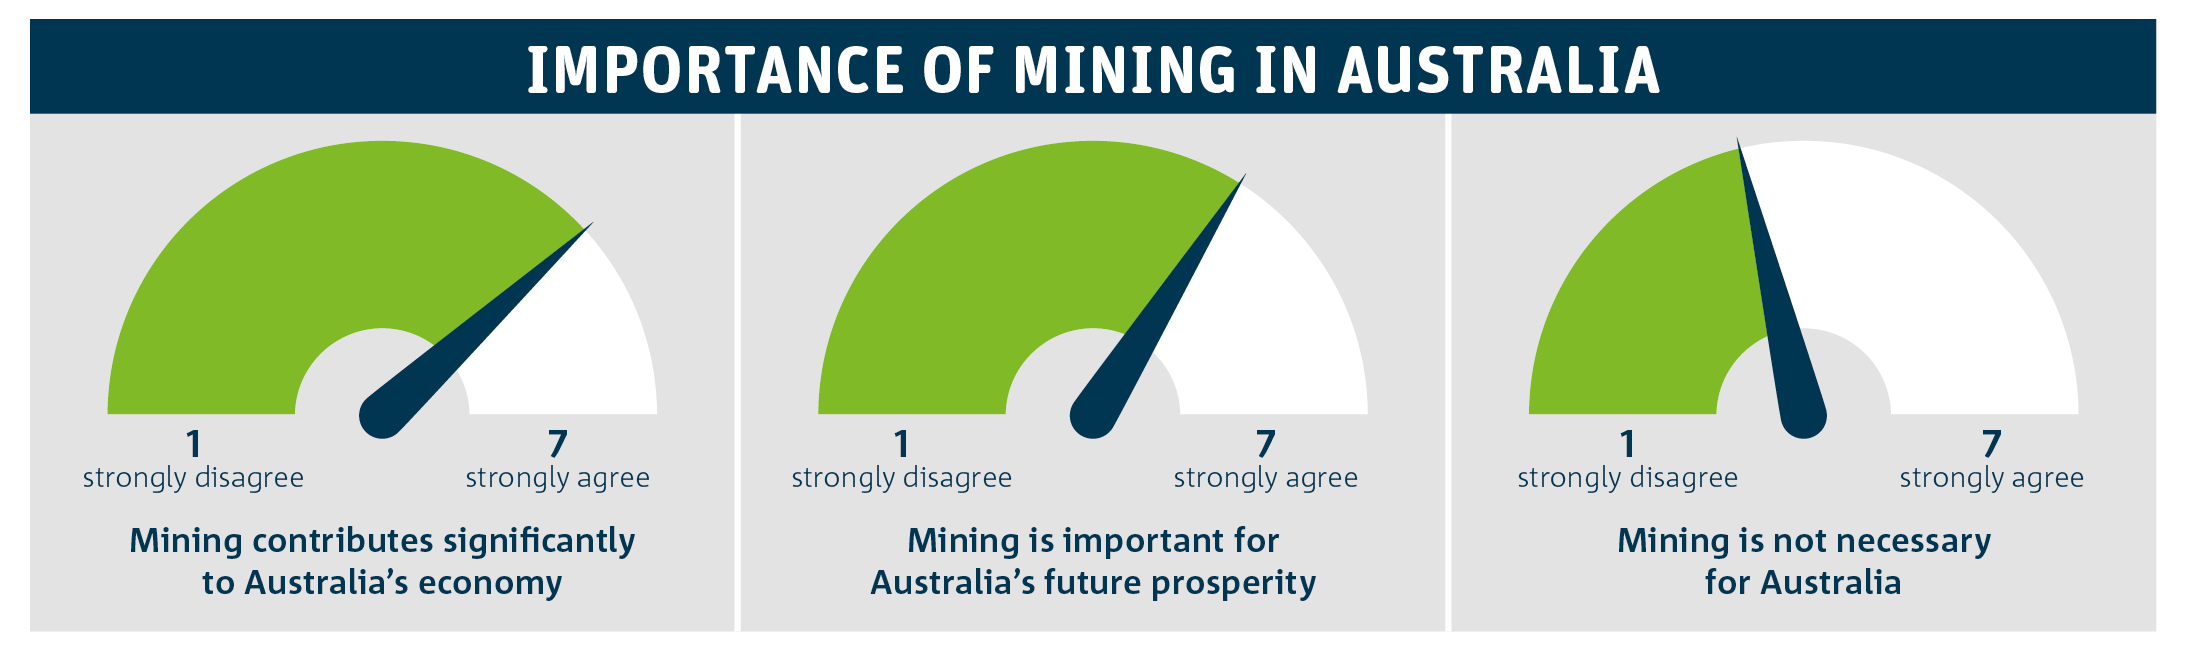 Graphs depicting attitudes on the importance of mining in Australia